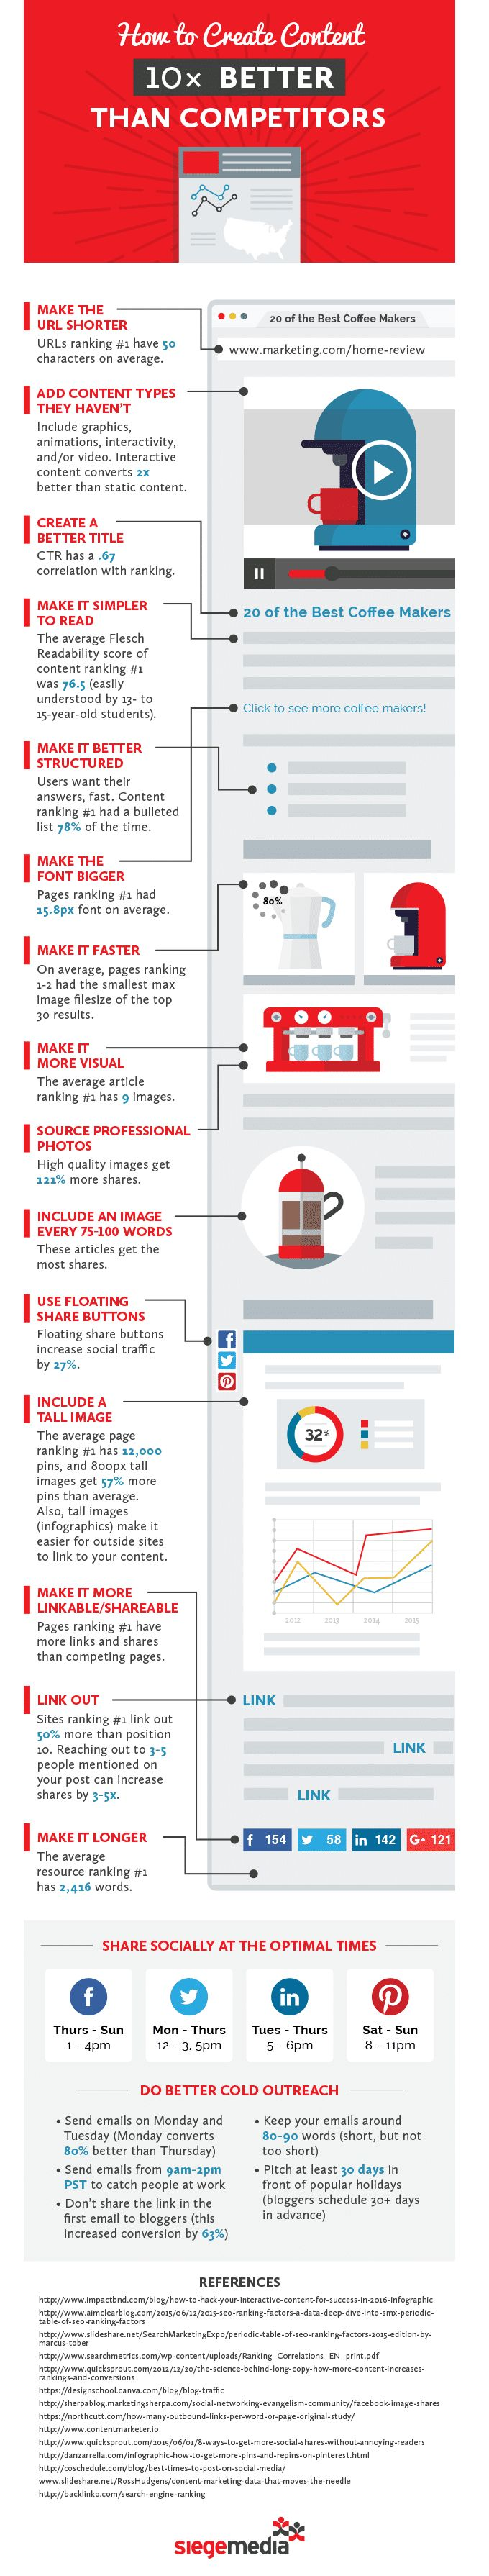 How To Create Better Content And Attract More Attention - Content is the name of the game today. In order to attract people to your website you need to fine tune your process and make better content. Here is how! - #infographic